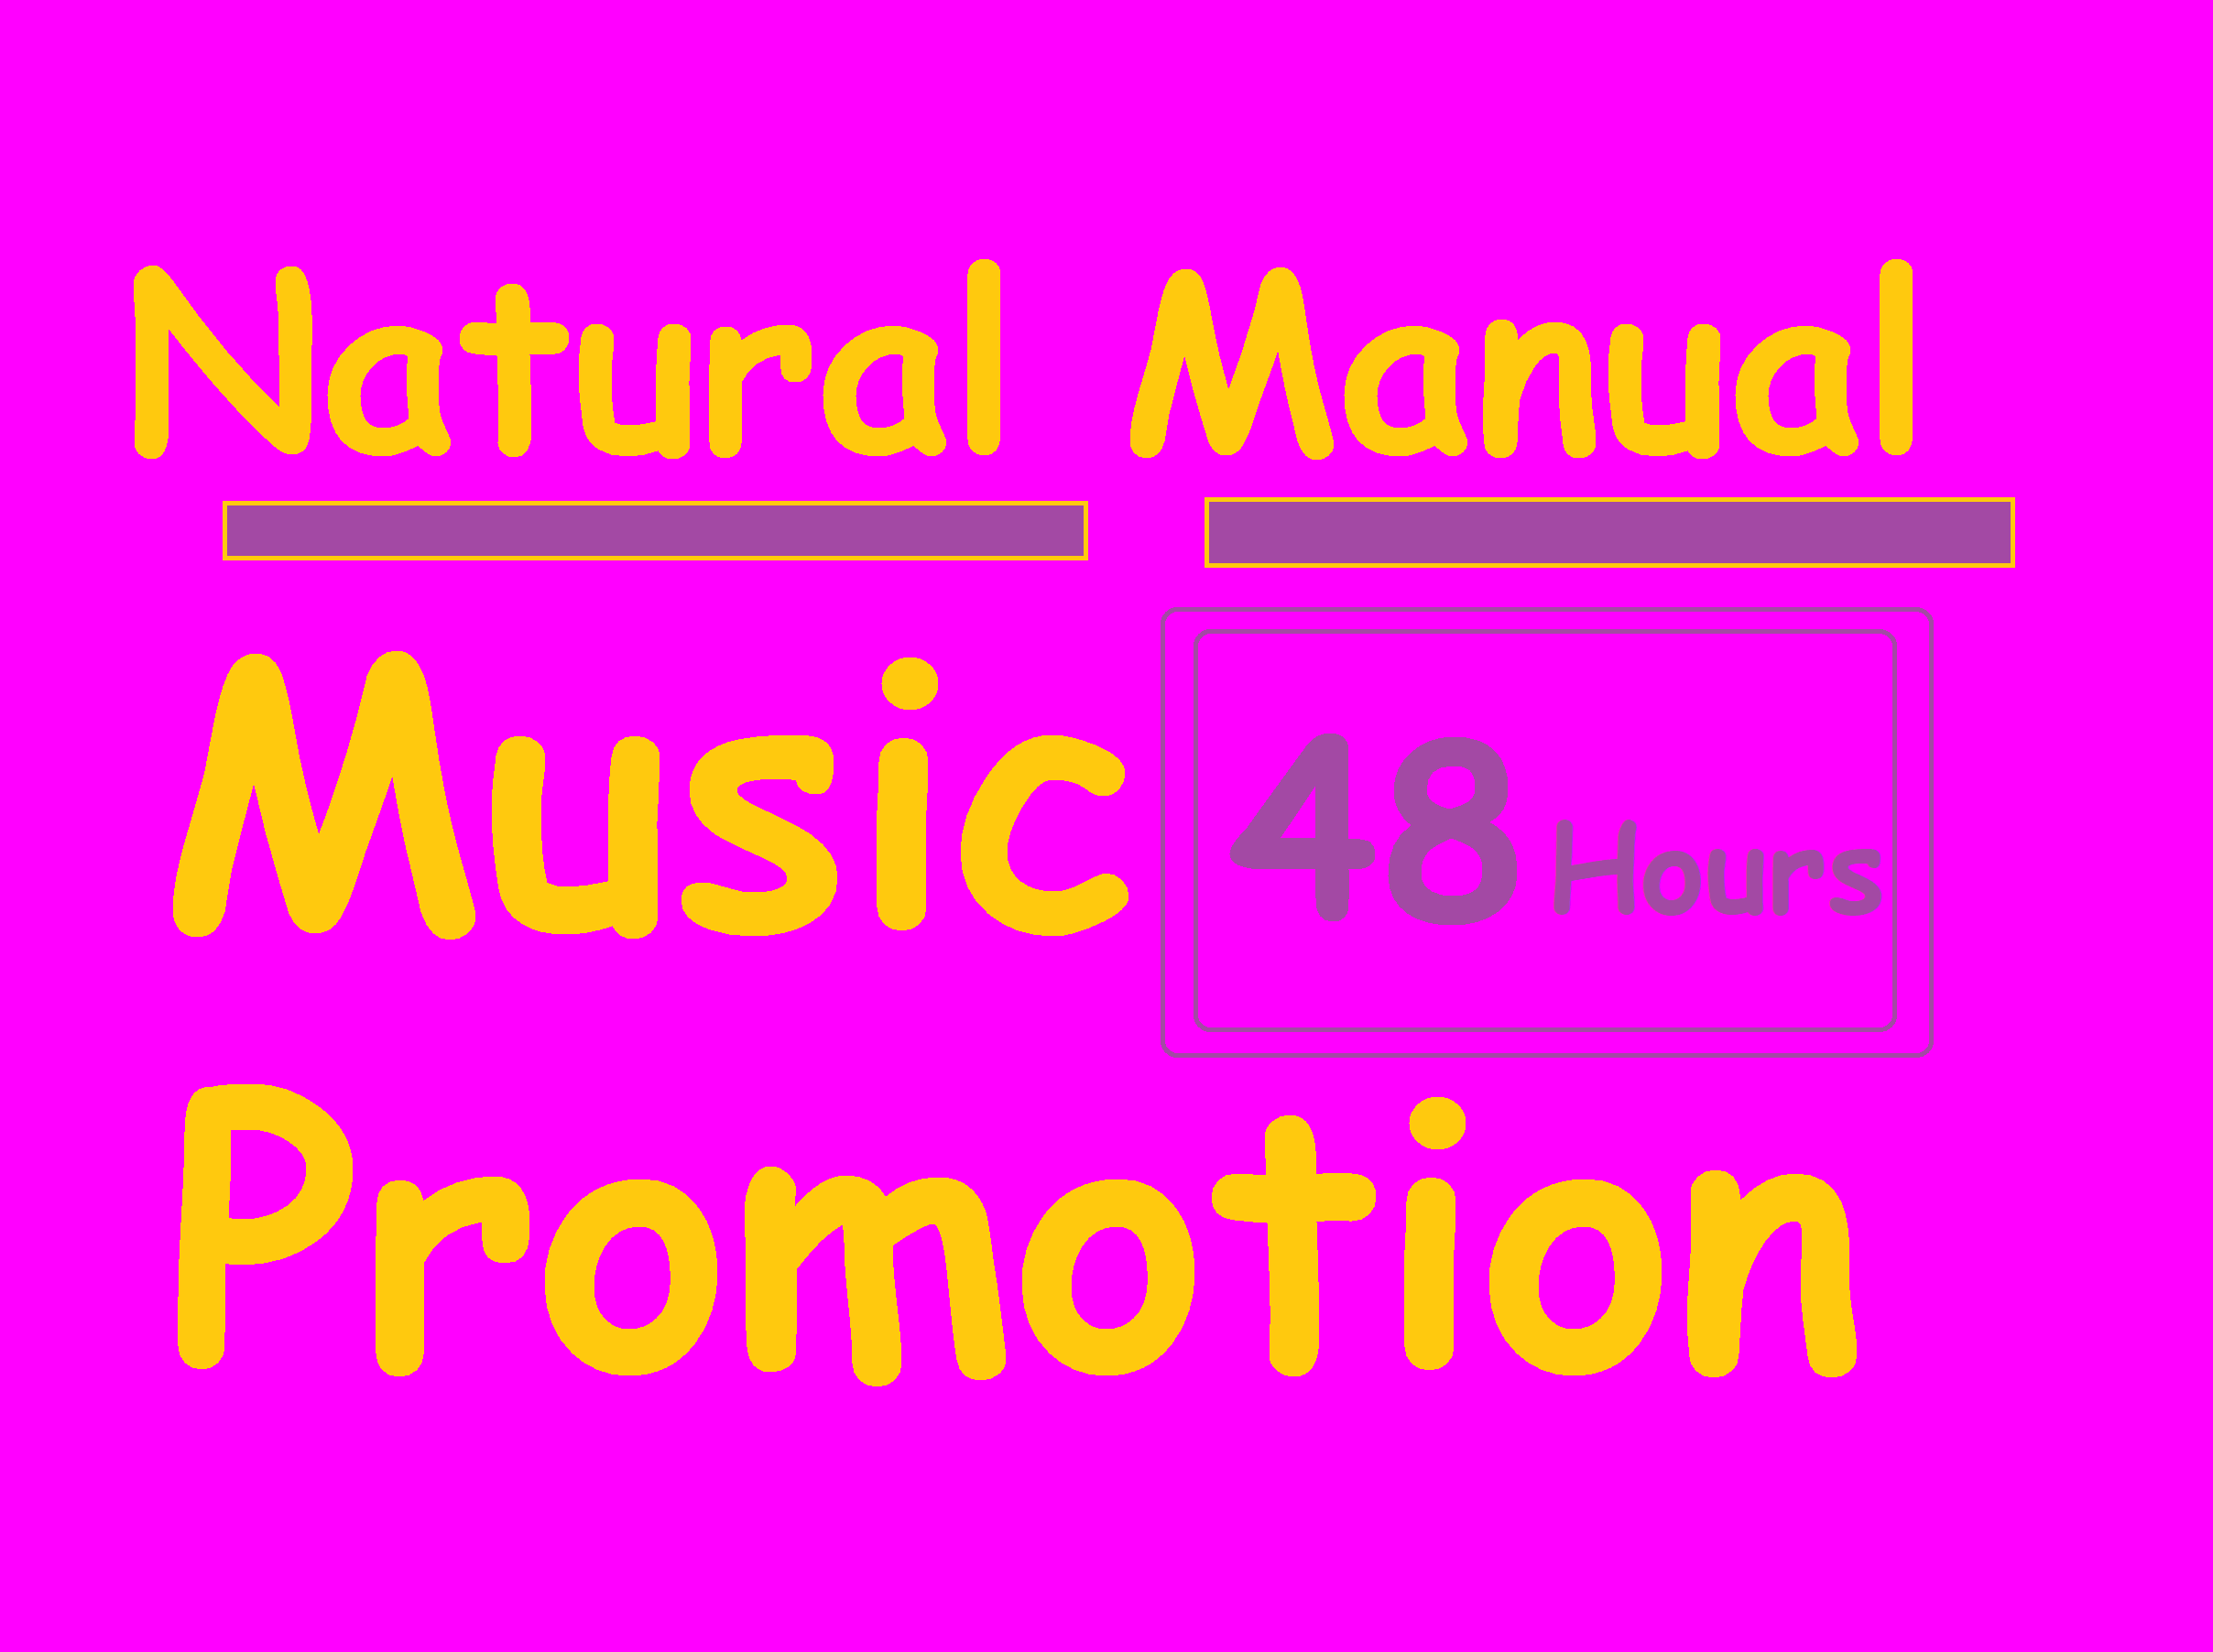 Manual Natural HQ promotion service By Music loveer within 48 hours